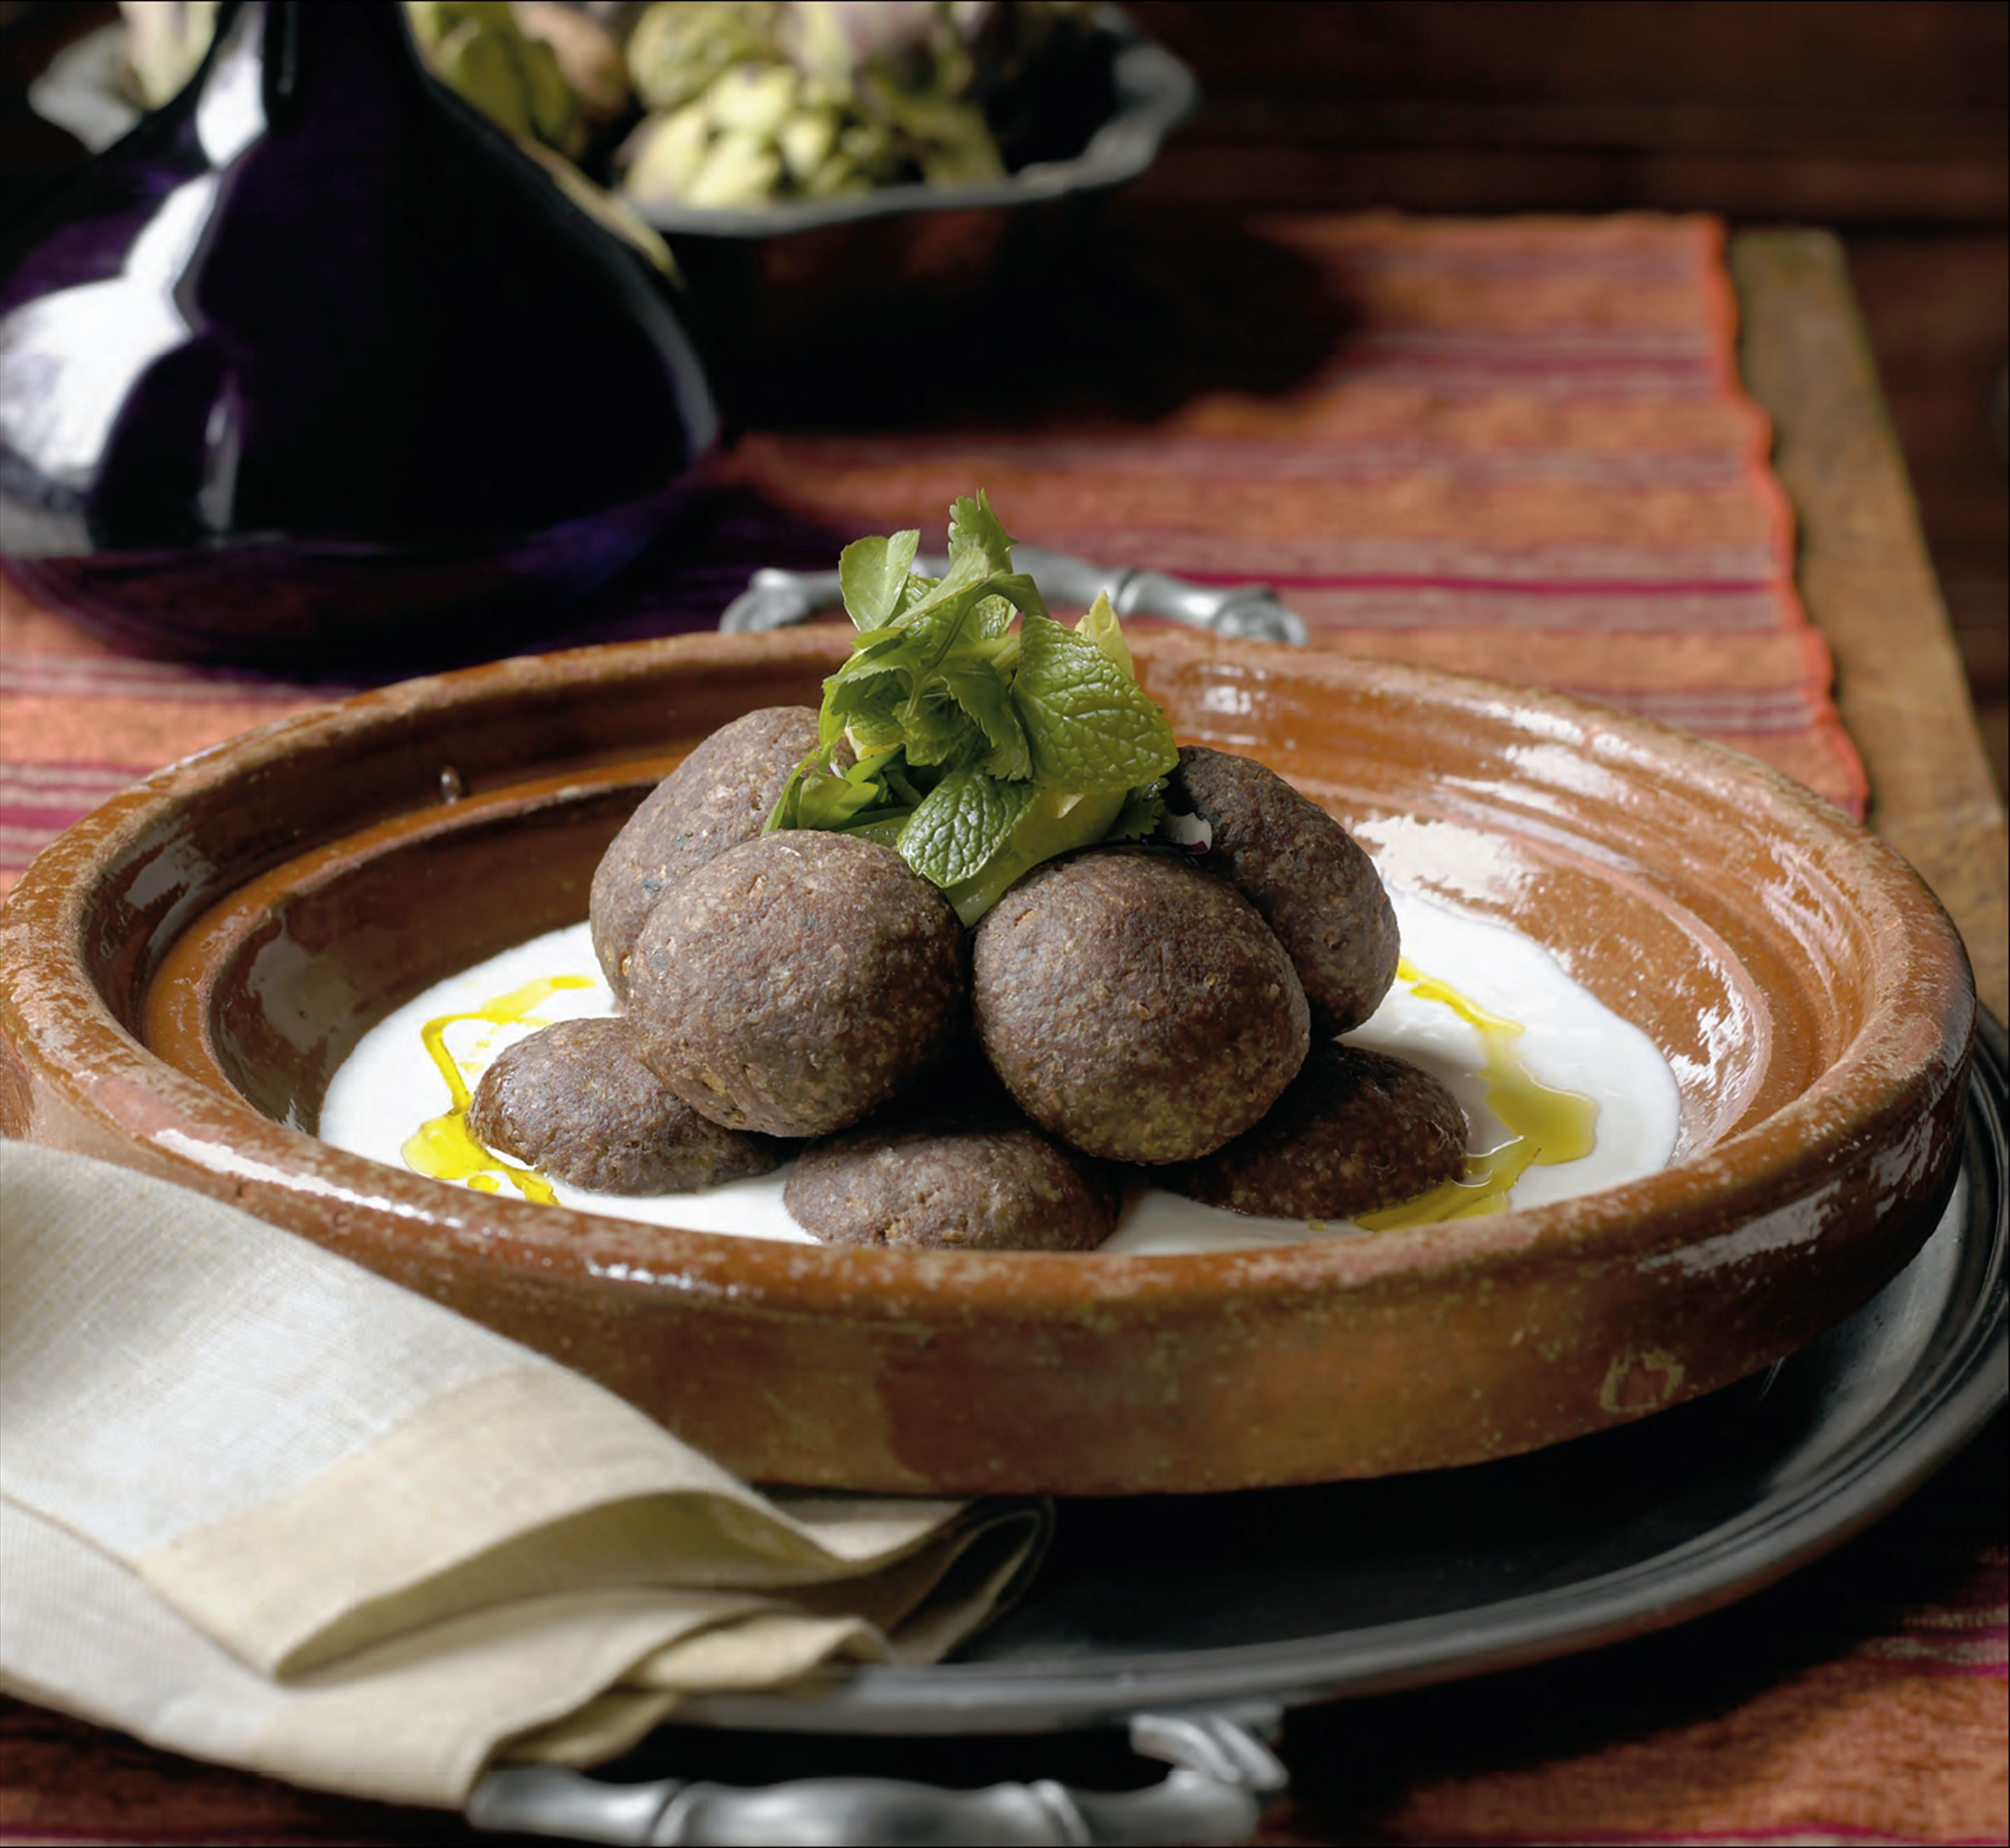 Zghorta-style kibbeh patties stuffed with cinnamon and pine-nut butter